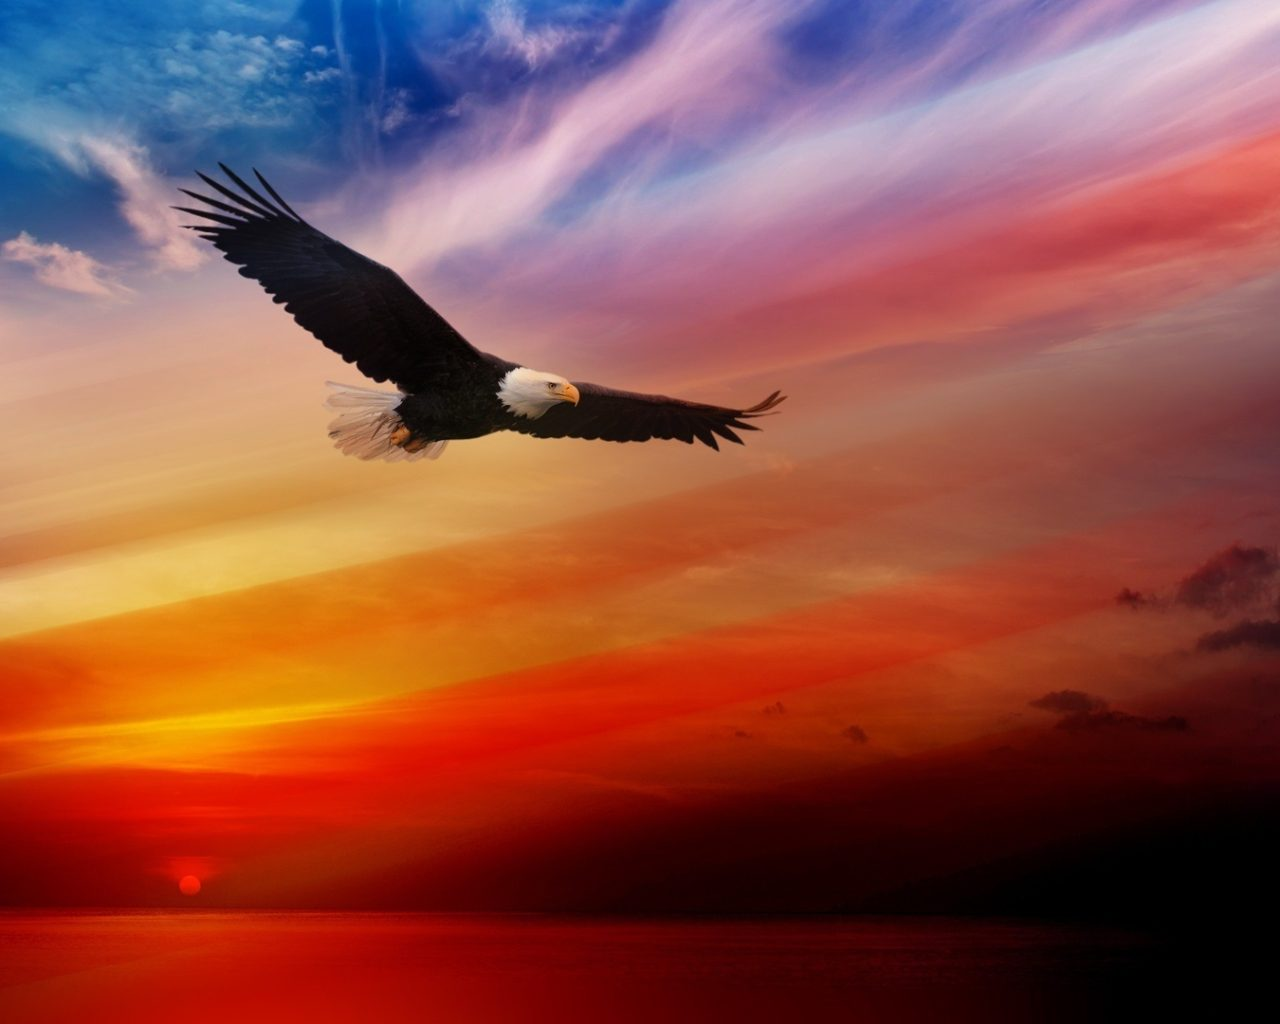 Free Cute Wallpapers For Android Bald Eagle Flying At Sunset Red Sky Desktop Hd Wallpaper